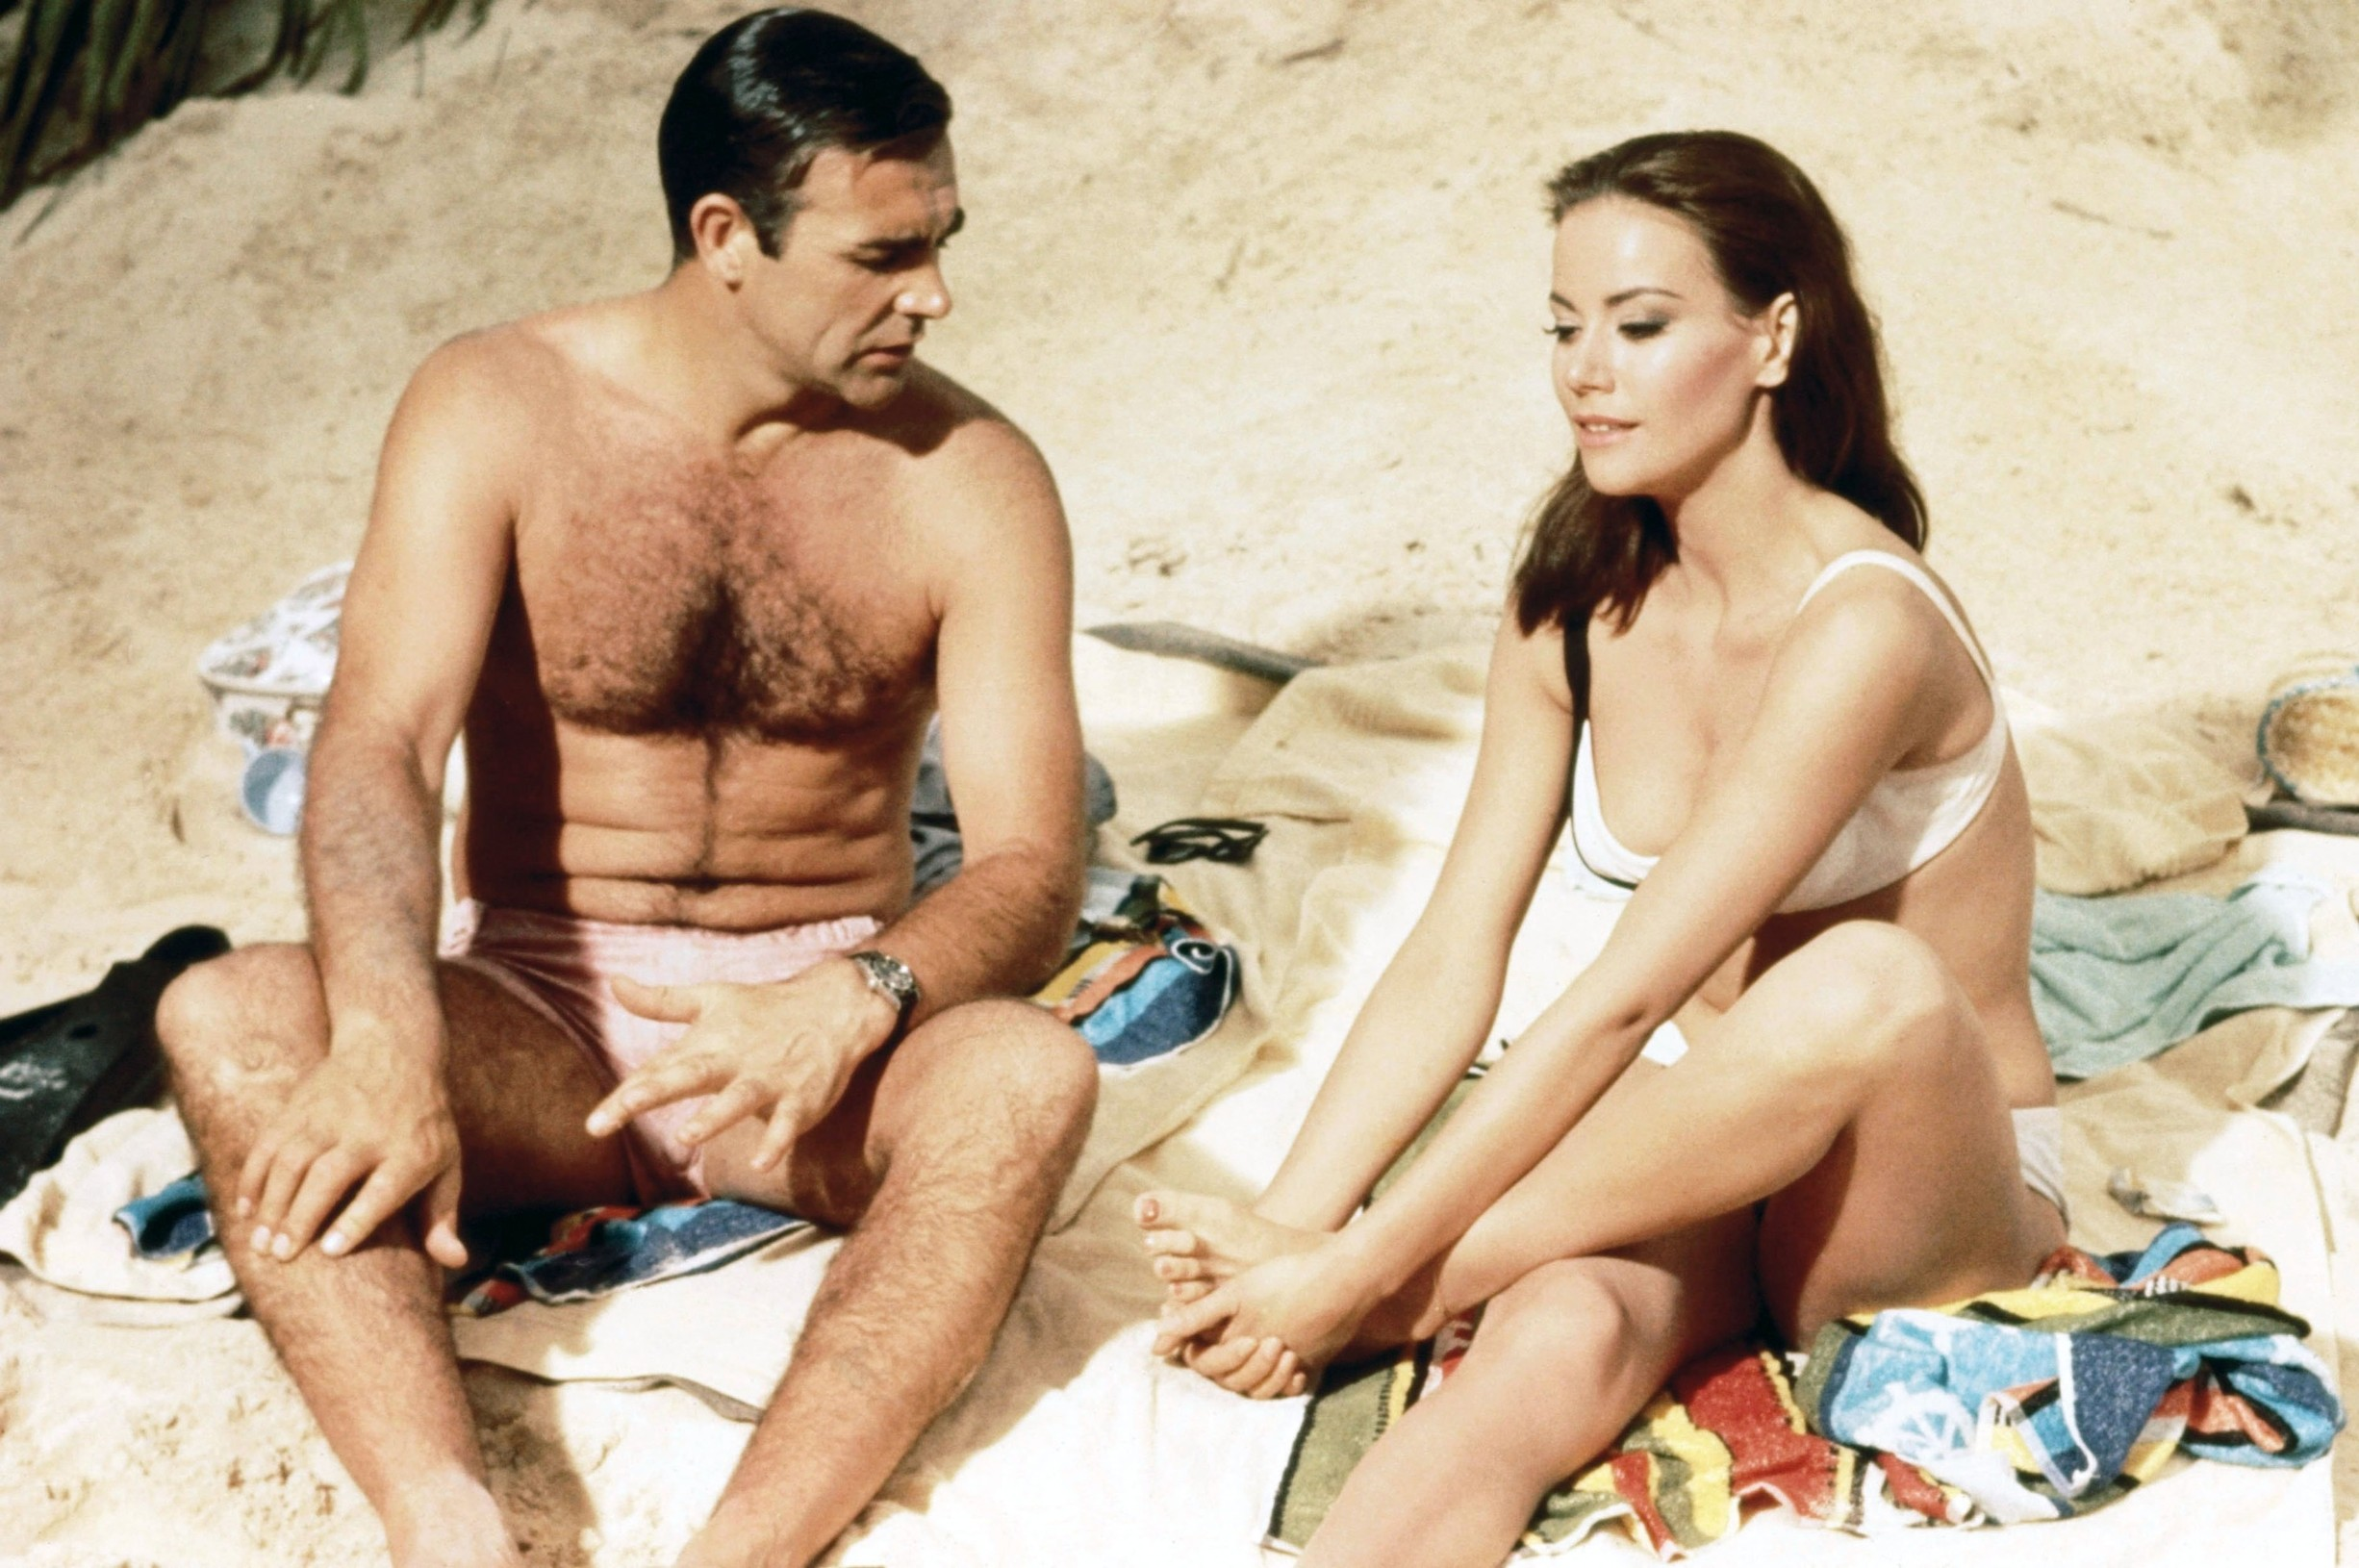 007, JAMES BOND: THUNDERBALL (1965) - CLAUDINE AUGER - SEAN CONNERY.,Image: 137049330, License: Rights-managed, Restrictions: Editorial use only. No merchandising or book covers. This is a publicly distributed handout. Access rights only, no license of copyright provided., Model Release: no, Credit line: EON-UNITED ARTISTS - Album / Album / Profimedia